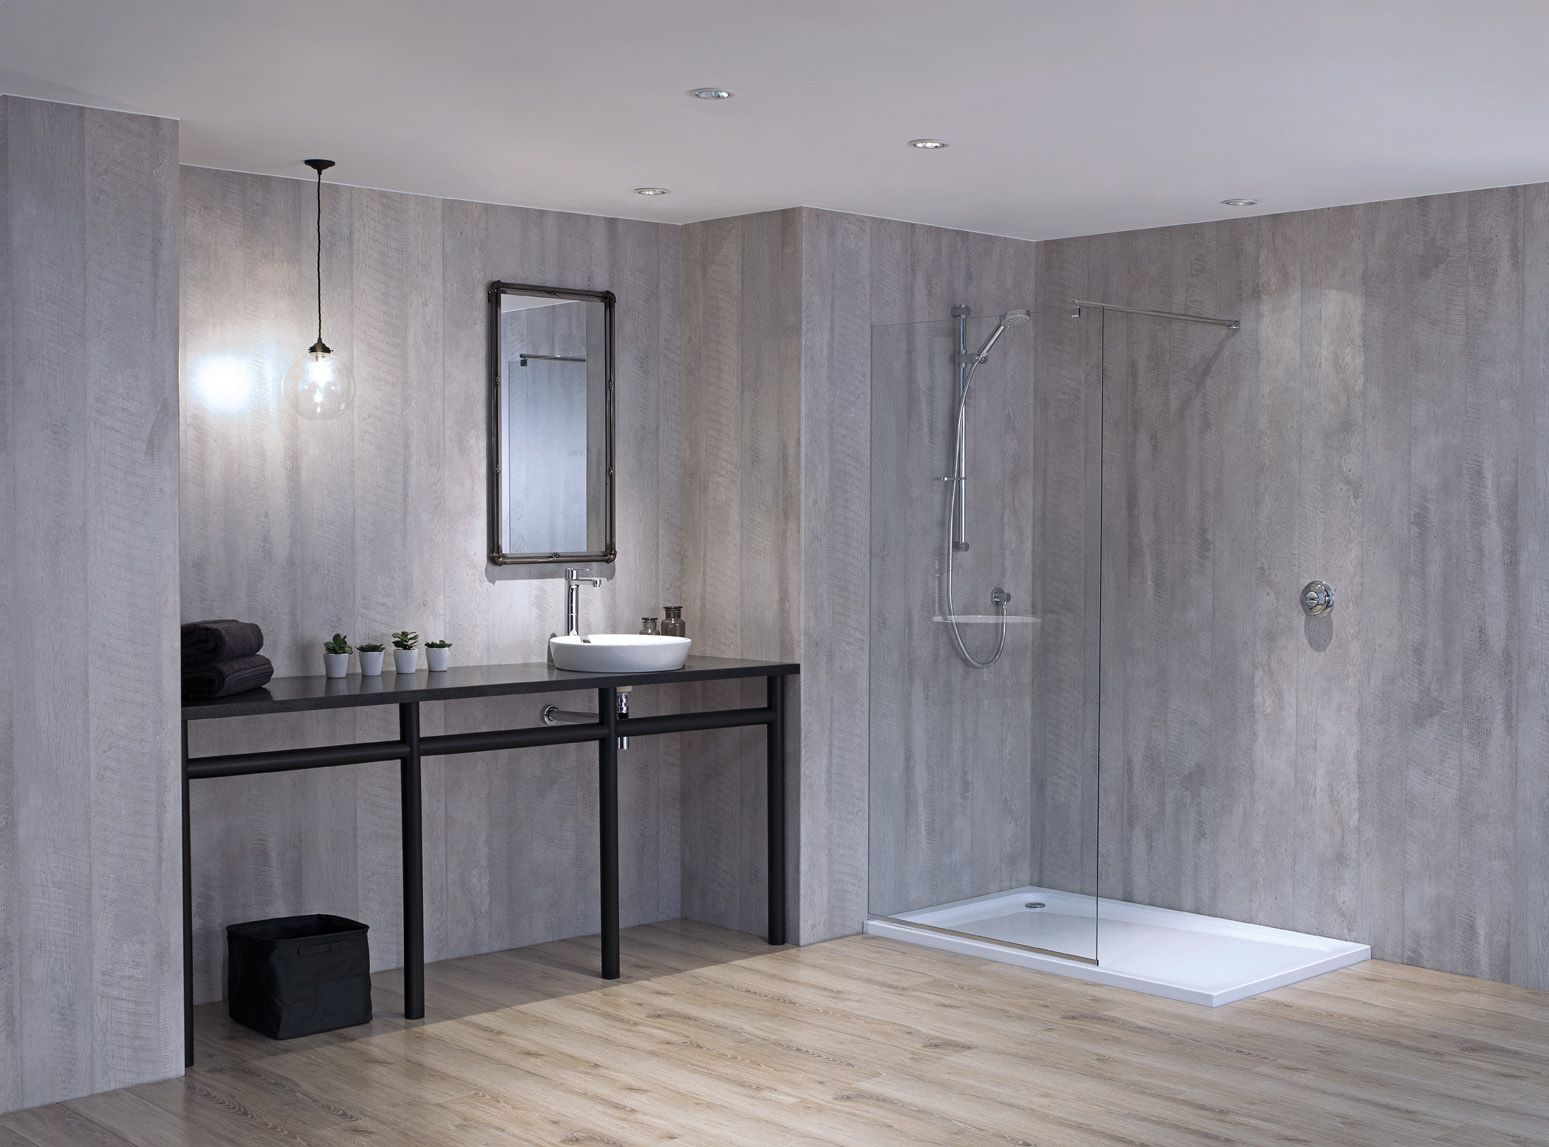 New Nuance Concrete Formwood Panels With Solid Surface Black Sparkle Vanity Surface Shower Wall Bathroom Wall Panels Bathroom Shower Panels